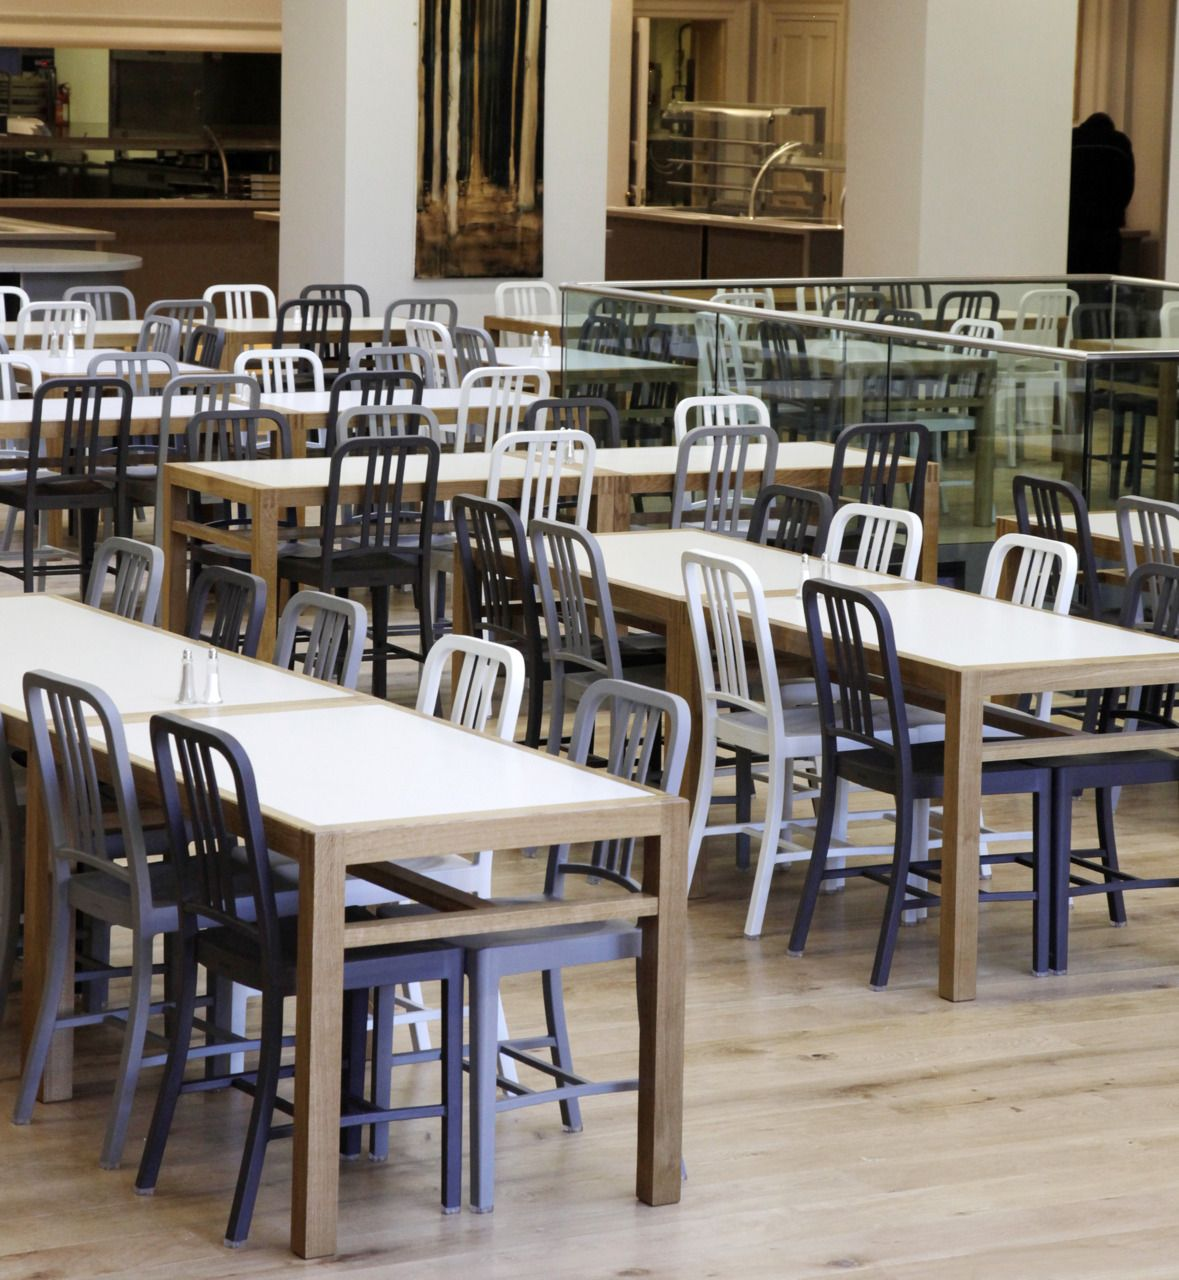 Emeco 111 Navy Chair Designed By Conran Architects, The New Dining Hall At  Bryanston School In Dorset UK #Emeco, #111 Navy Chair